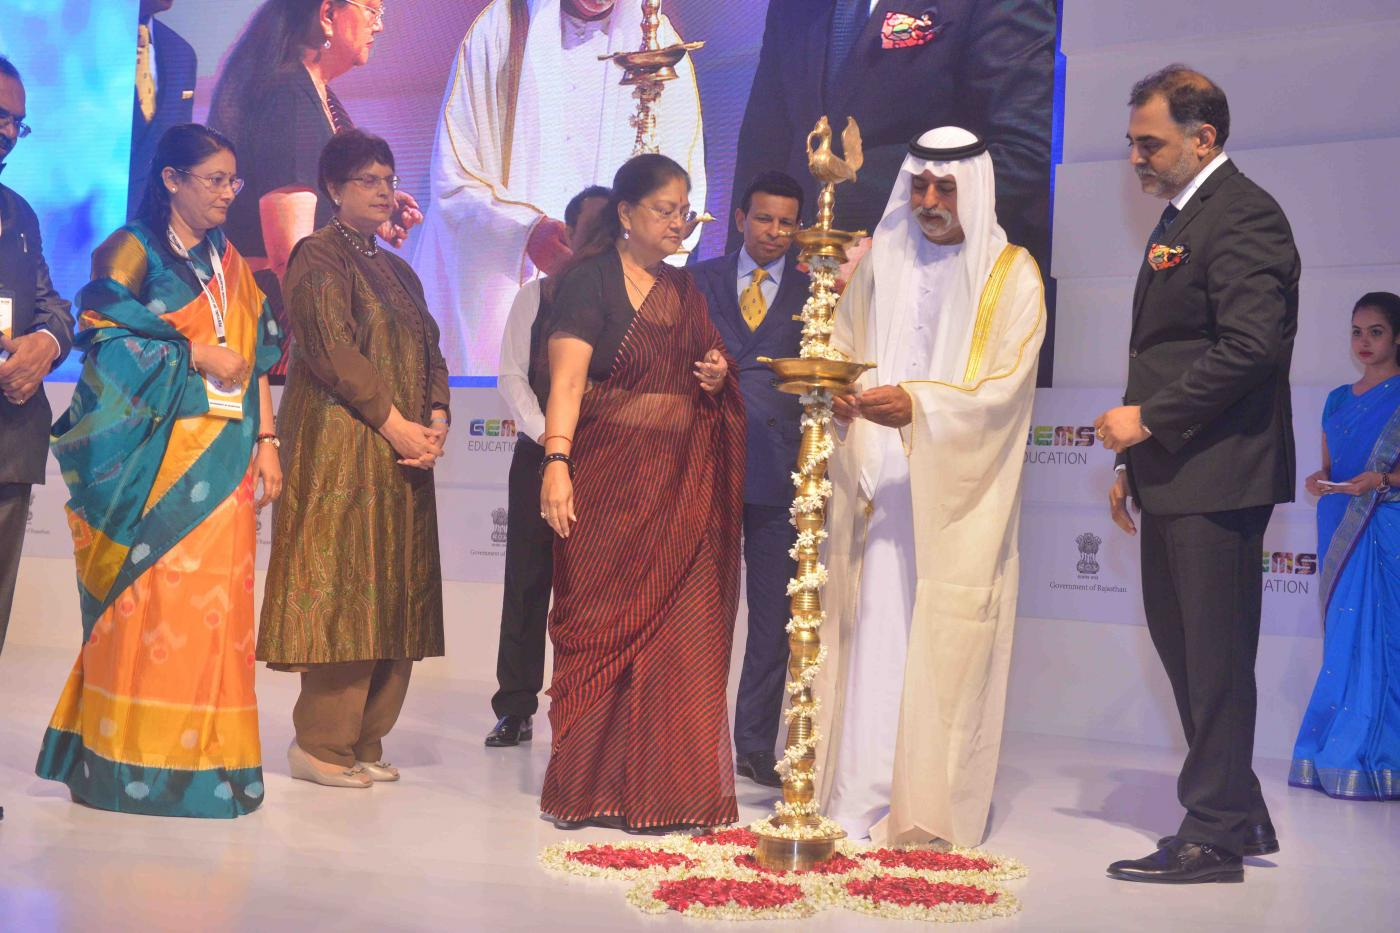 Sheikh Nahyan Attends India Education Event | Asian Lite UAE